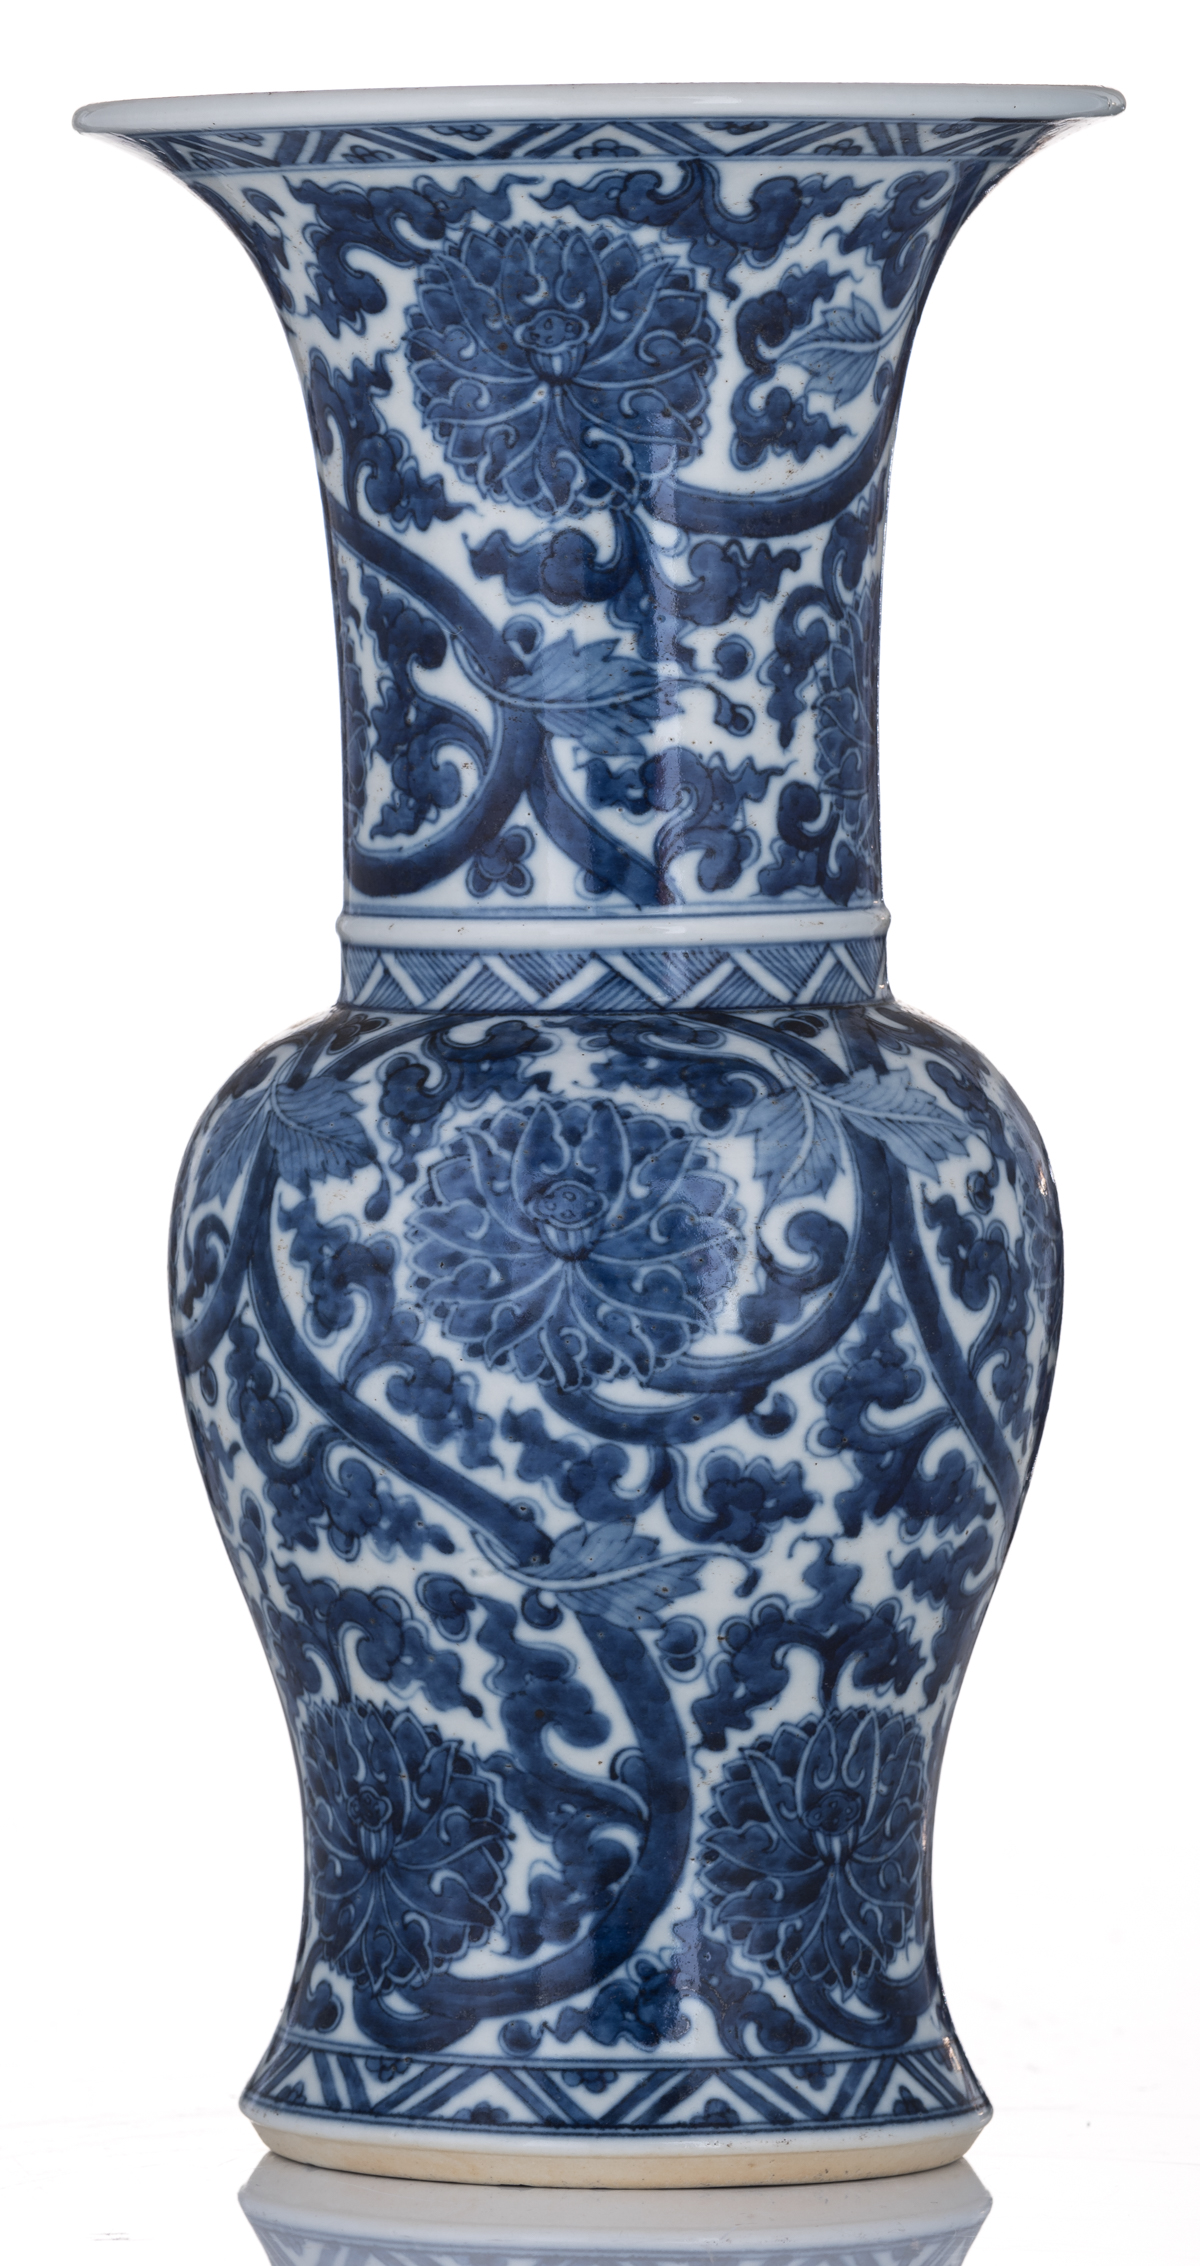 Lot 57 - A Chinese blue and white floral decorated yenyen vase, Kangxi, 18thC, H 33,5 cm